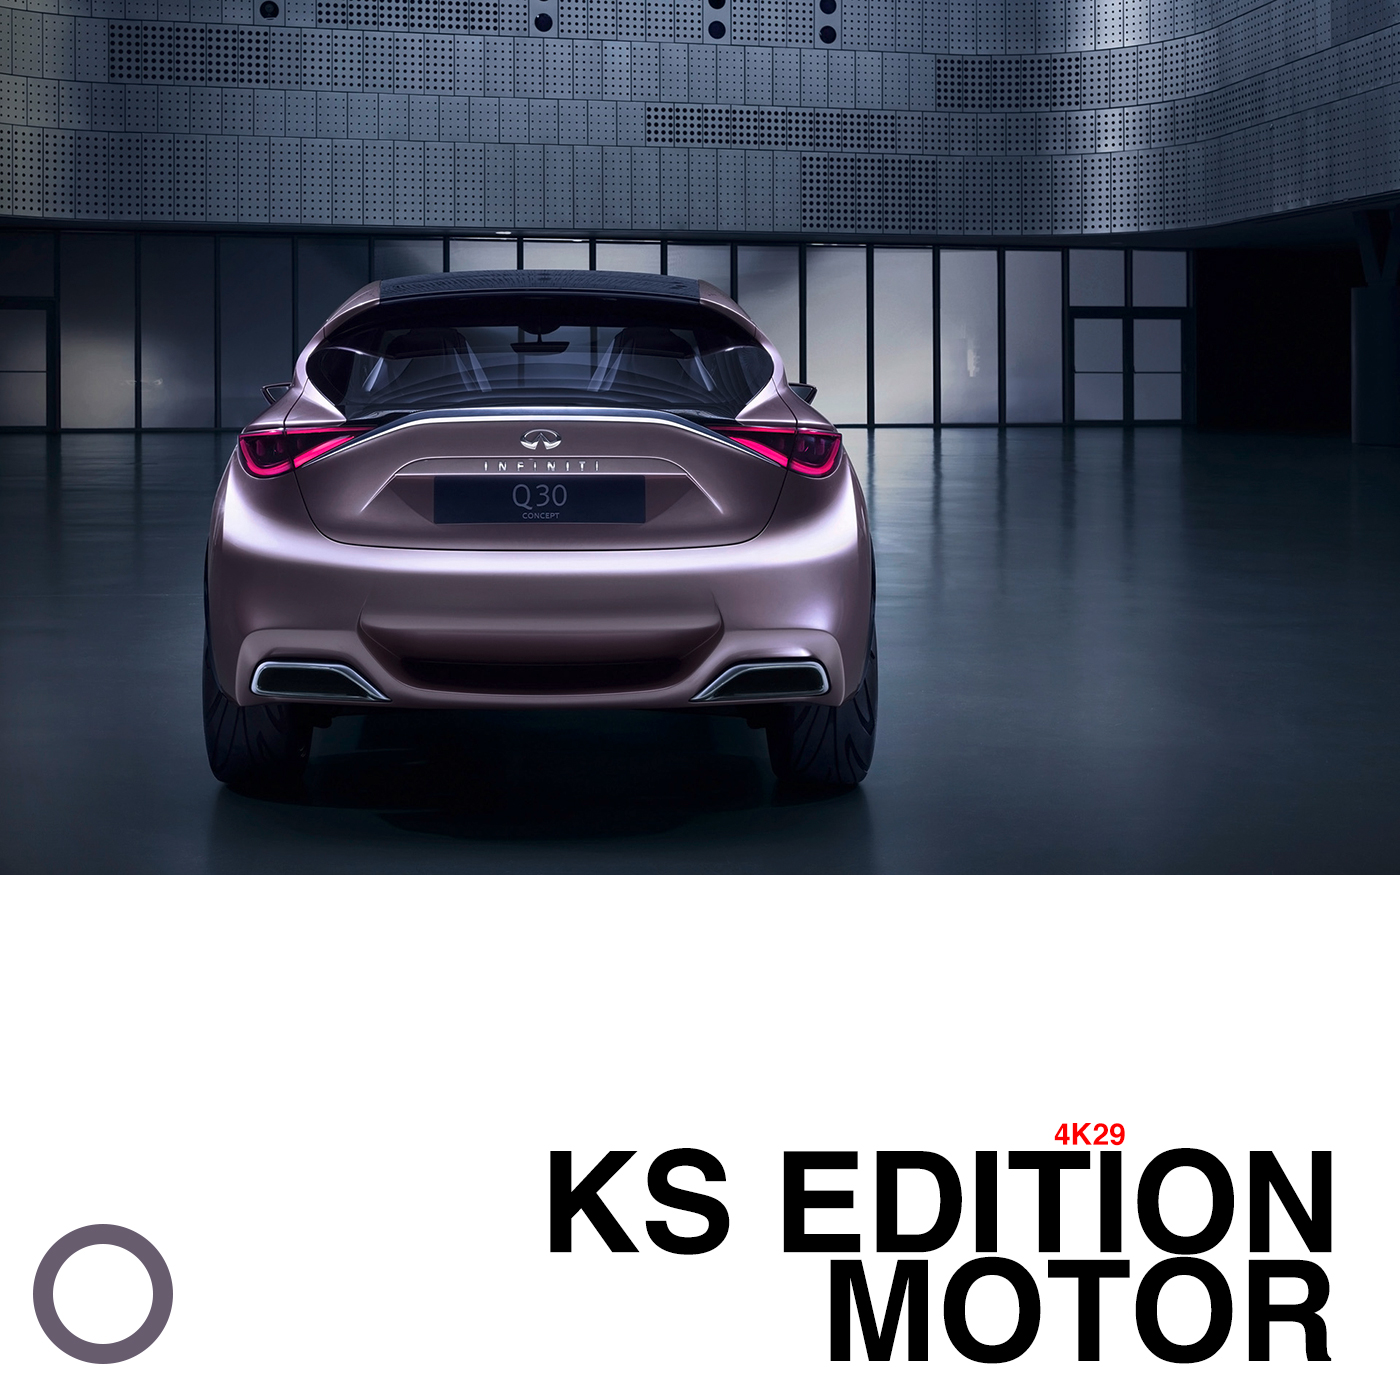 KS EDITION MOTOR 4K29 MOBILE640